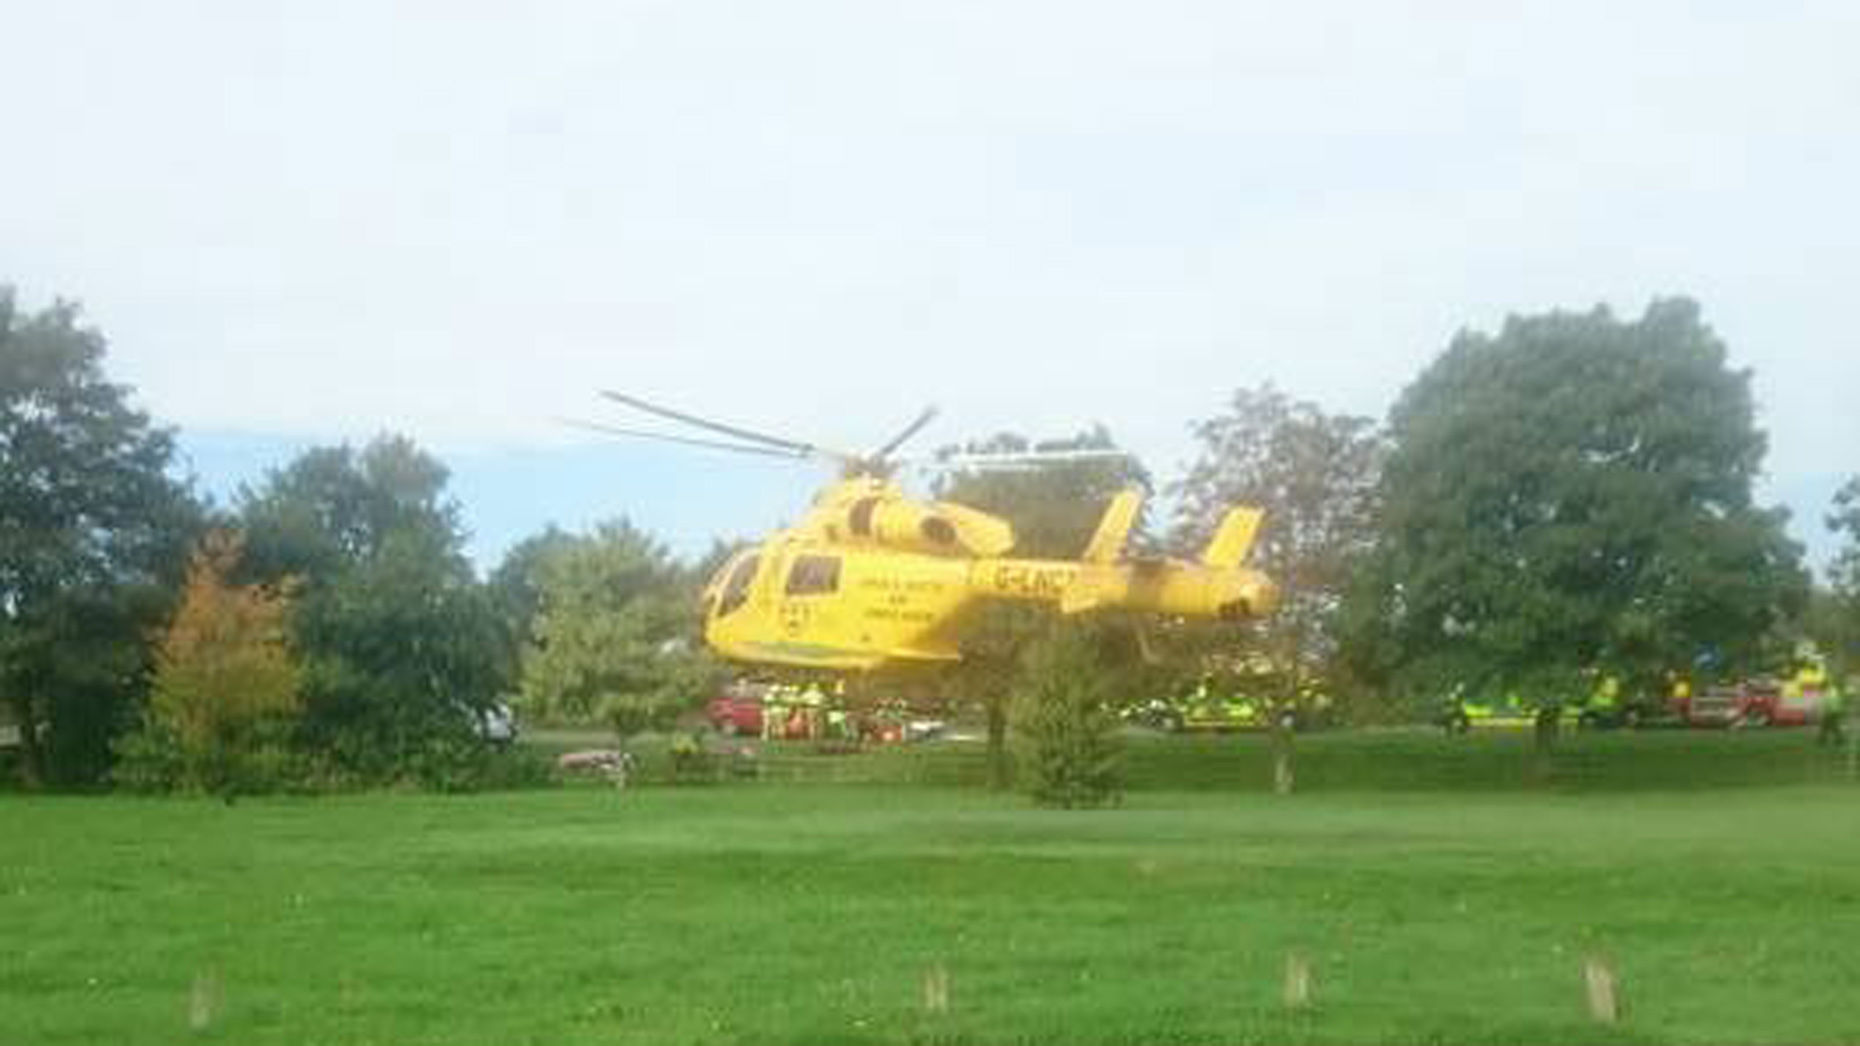 The woman was airlifted to Queen's Medical Centre in Nottingham after the crash.